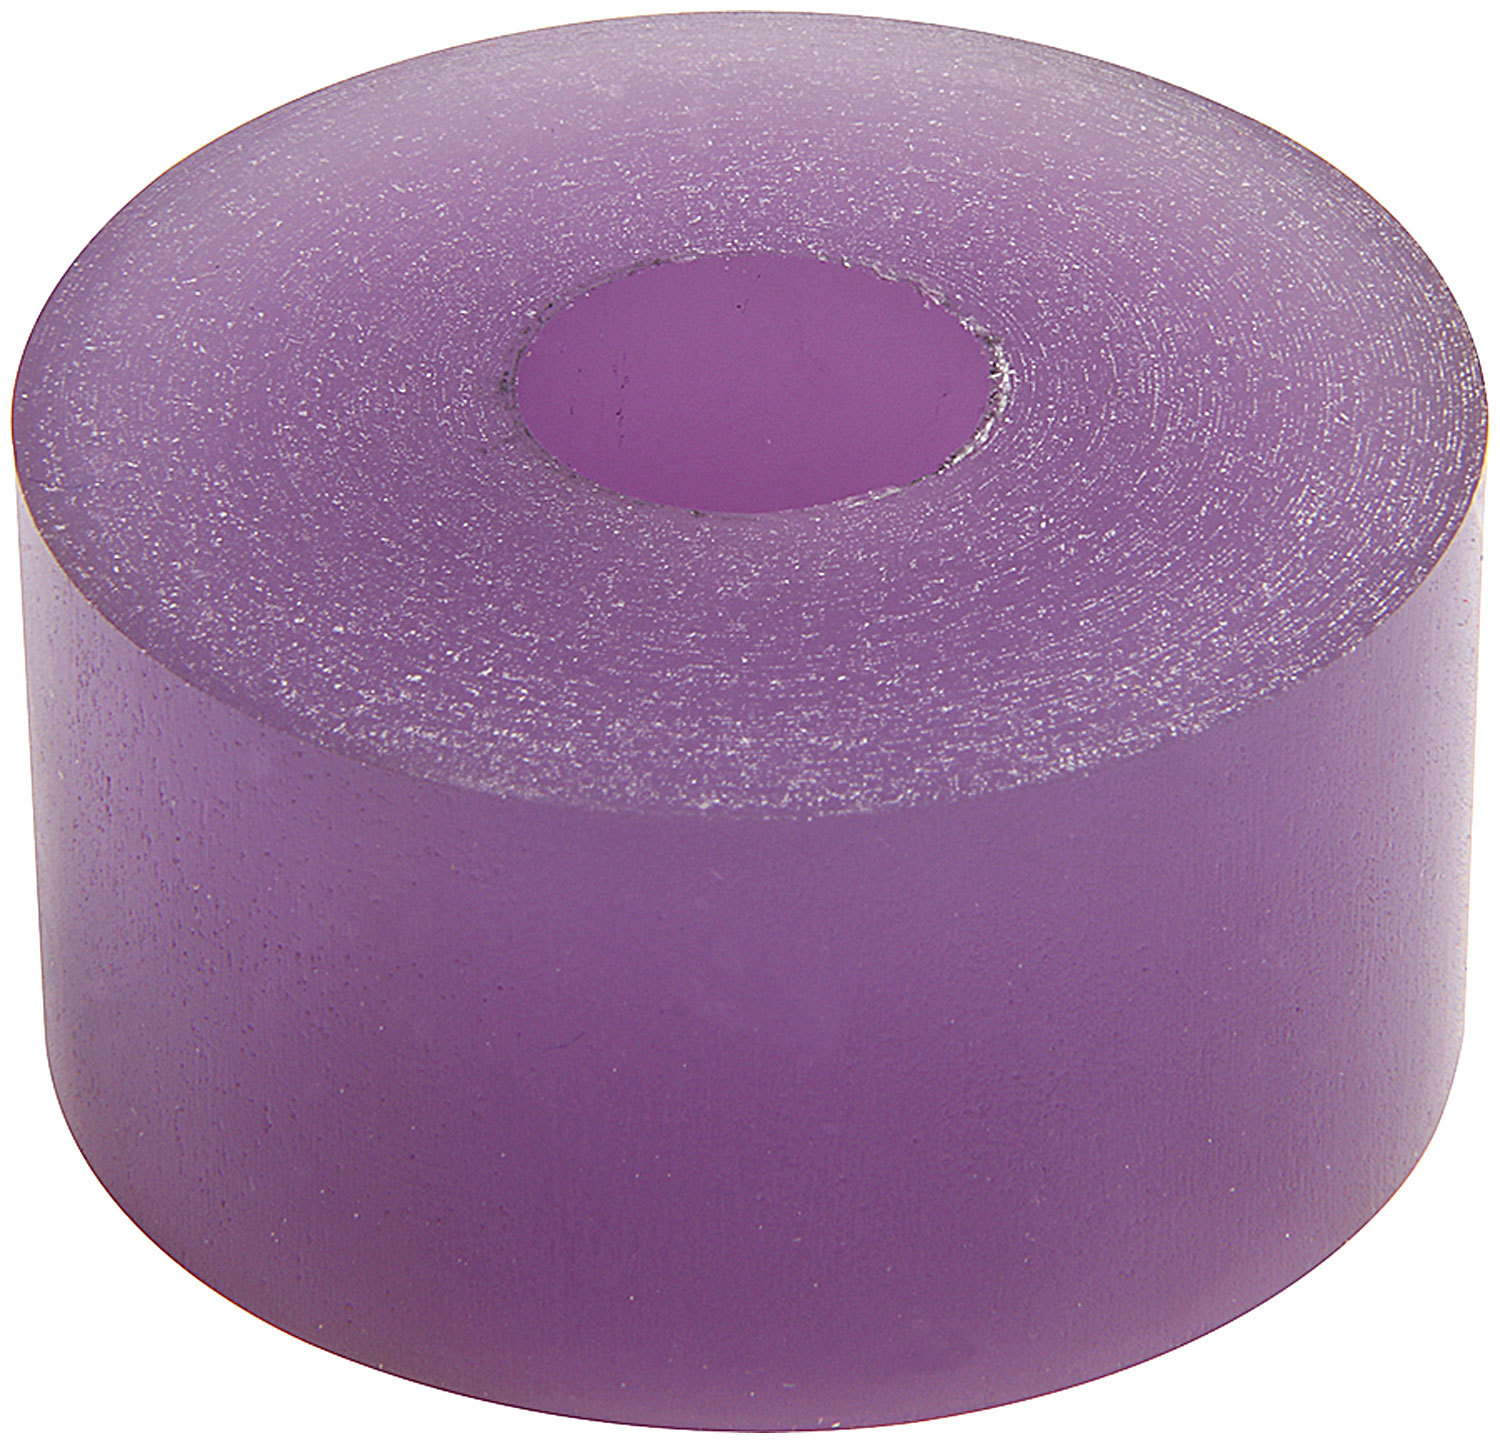 Bump Stop Puck 60dr Purple 1in Tall 14mm